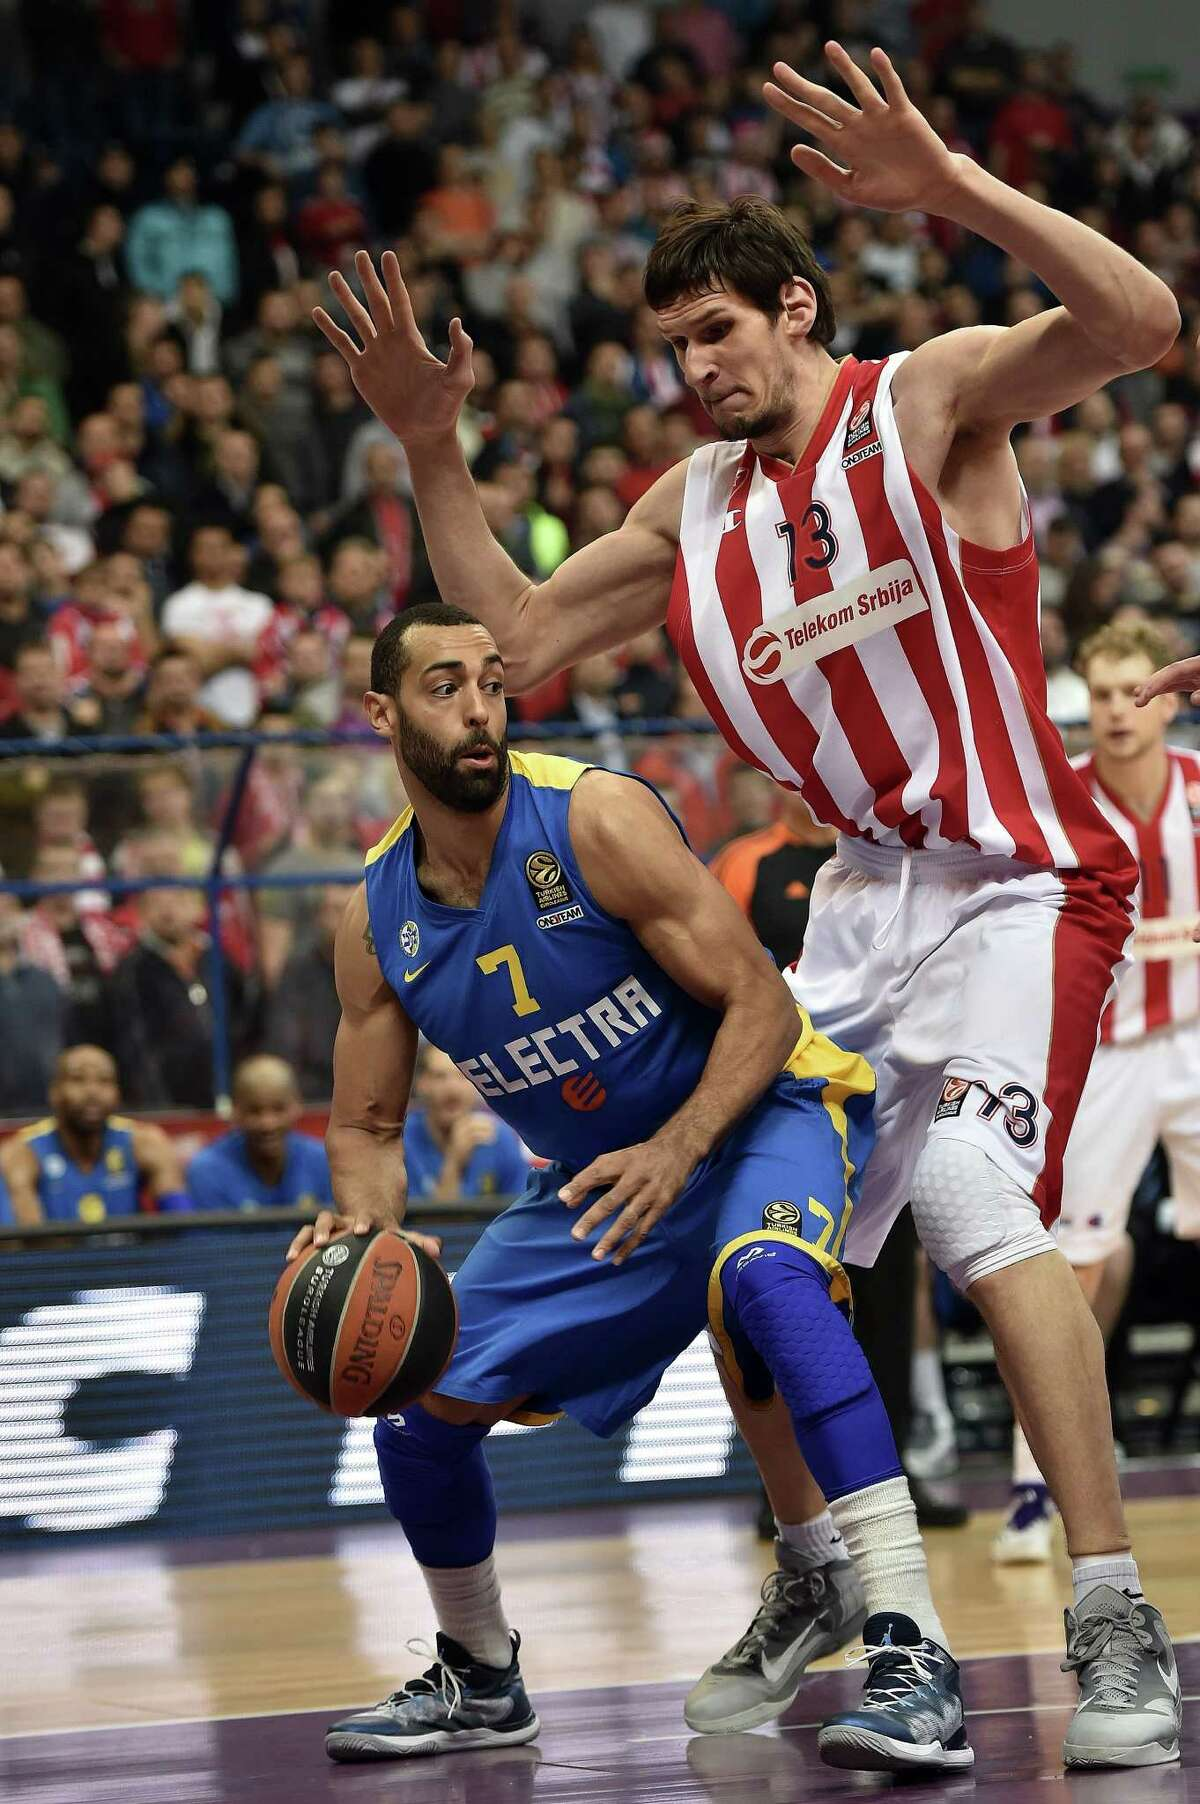 Boban Marjanovic, a 7-foot-3 center who signed a one-year, $1.2 million deal with the Spurs in July, will be barred from this summer's FIBA Eurobasket competition due to an ankle injury. Maccabi Tel Avivs US forward Brian Randle (L) vies with Red Star Belgrade's center Boban Marjanovic during the Euroleague Top 16 basketball match between Crvena Zvezda Belgrade and Maccabi Electra Tel Aviv in Belgrade on March 5, 2015. AFP PHOTO / ANDREJ ISAKOVIC (Photo credit should read ANDREJ ISAKOVIC/ AFP/Getty Images)